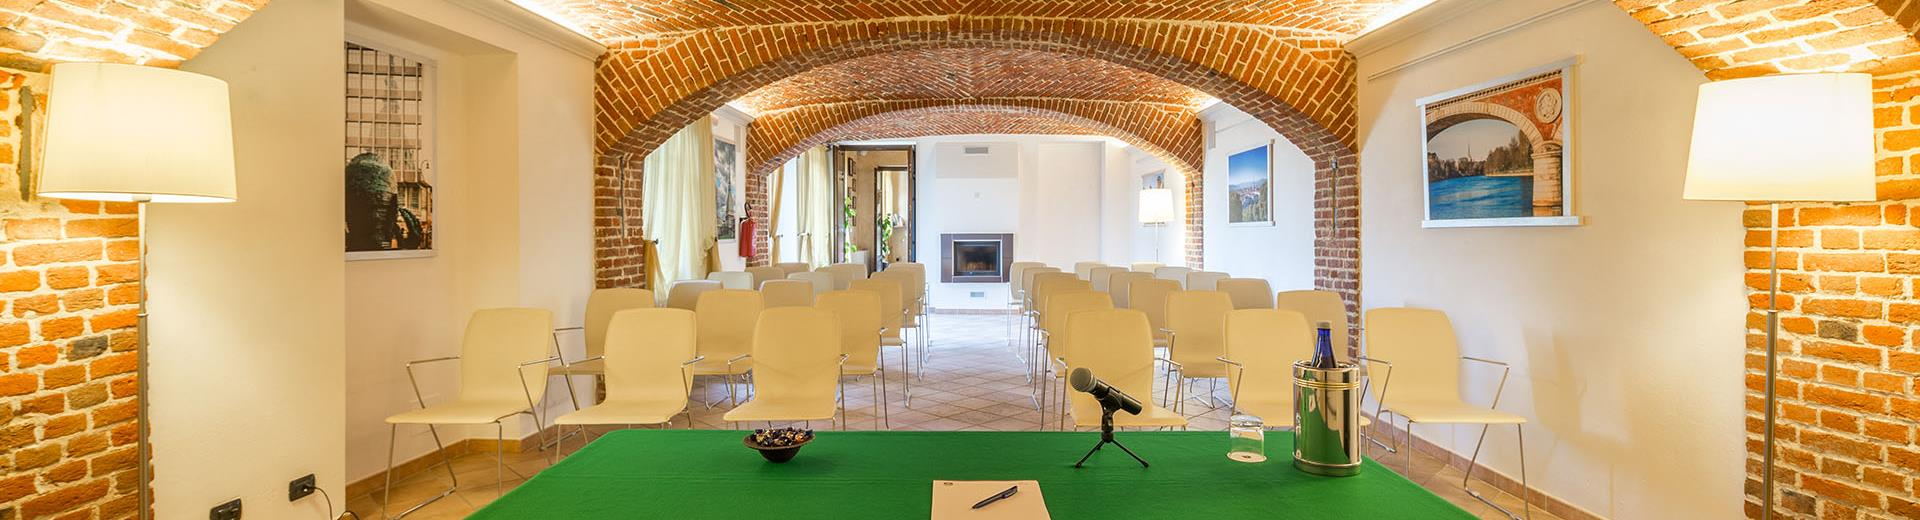 Meeting in 5 minutes from Turin airport. Ideal for conferences, team building, conferences, brunch, light lunch and snacks